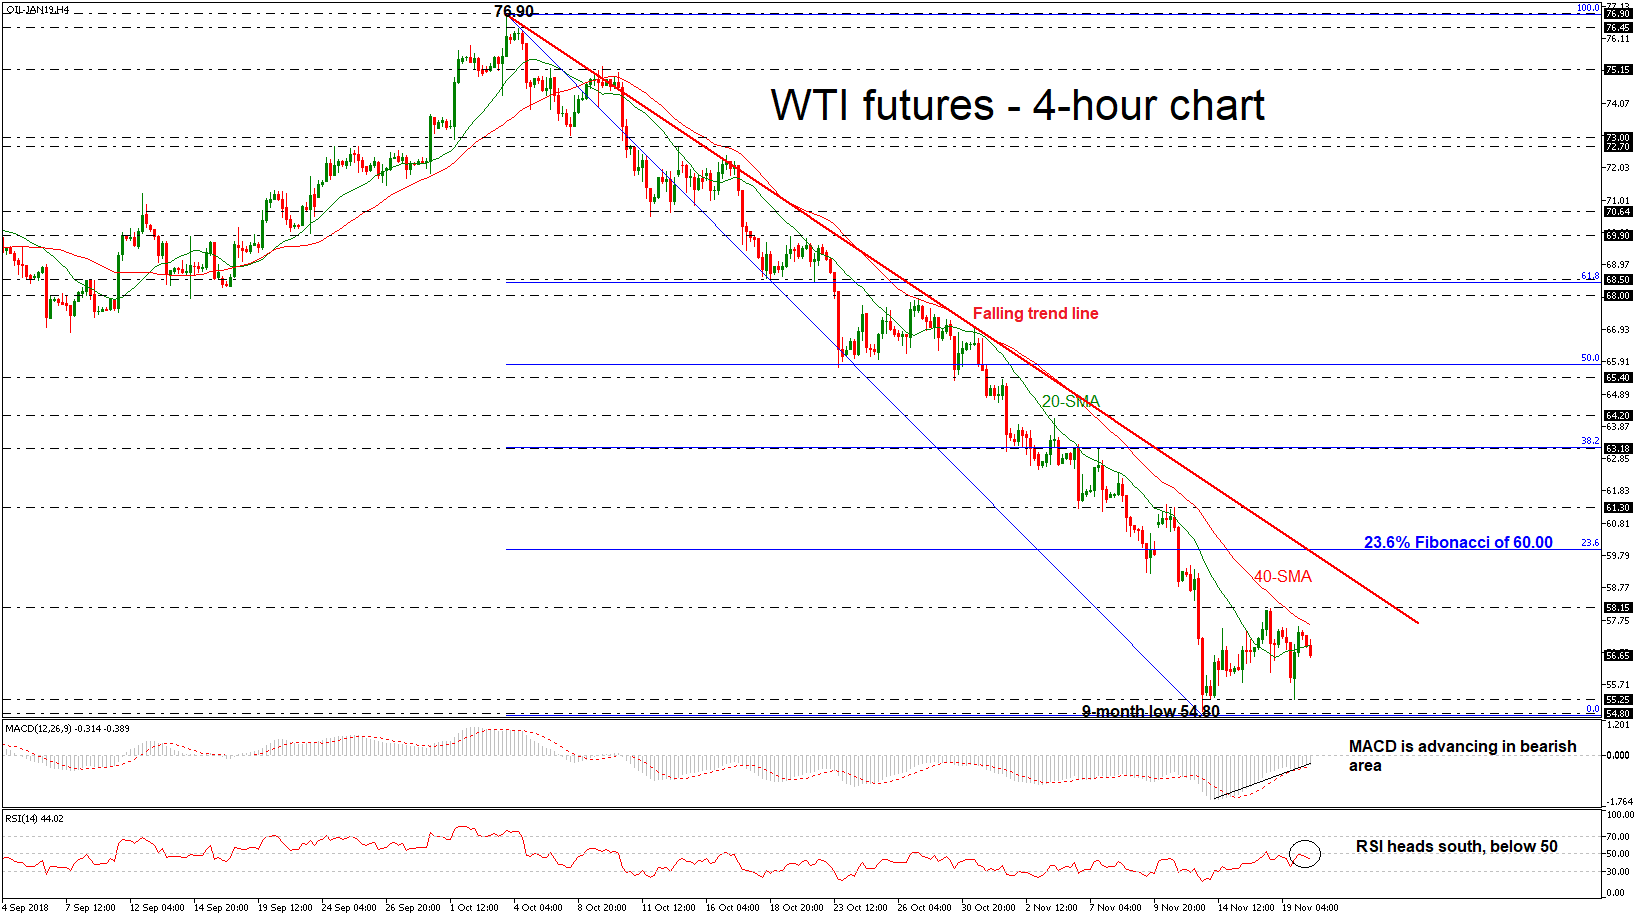 OIL-JAN19H4201118 | EconAlerts